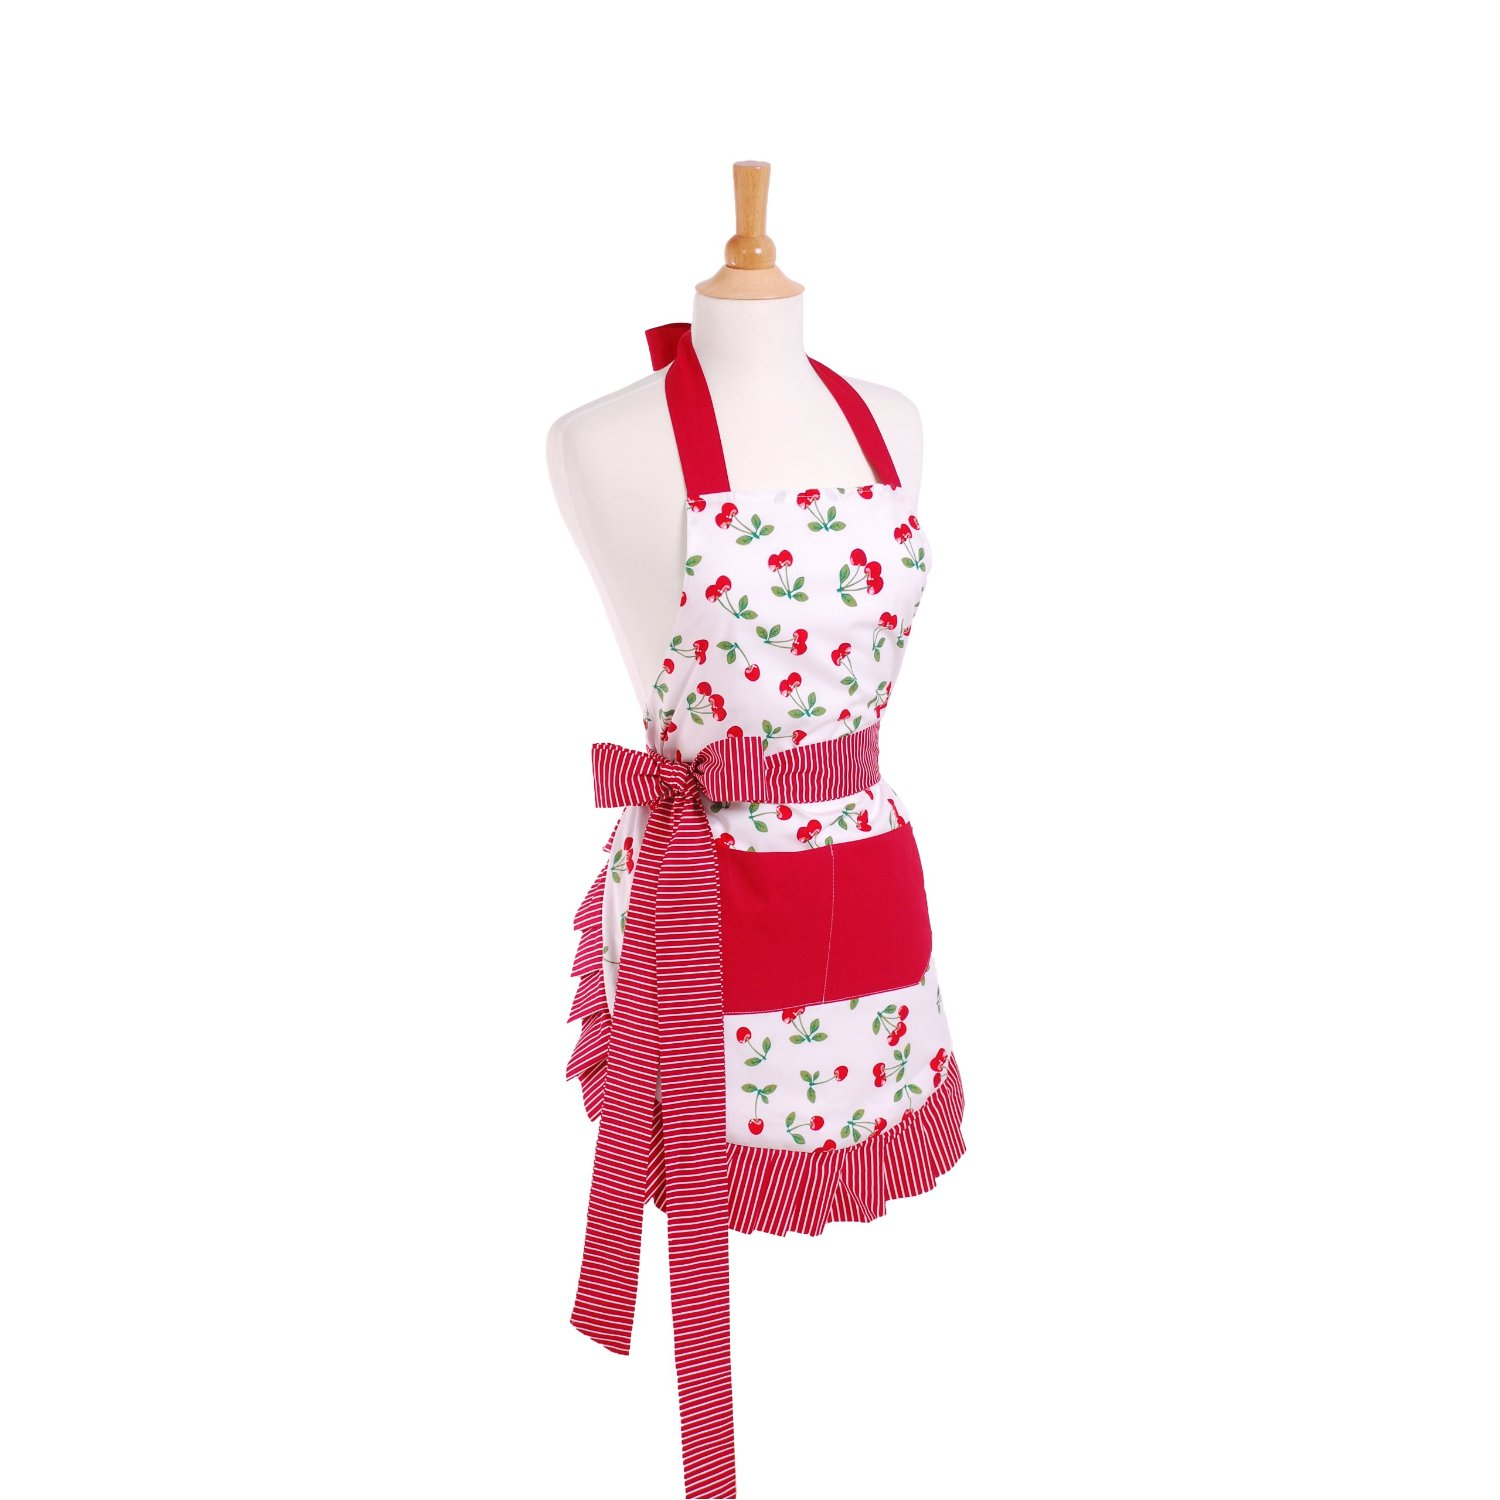 White &amp; Red Vintage style cherry apron with red bow and cute ruffle